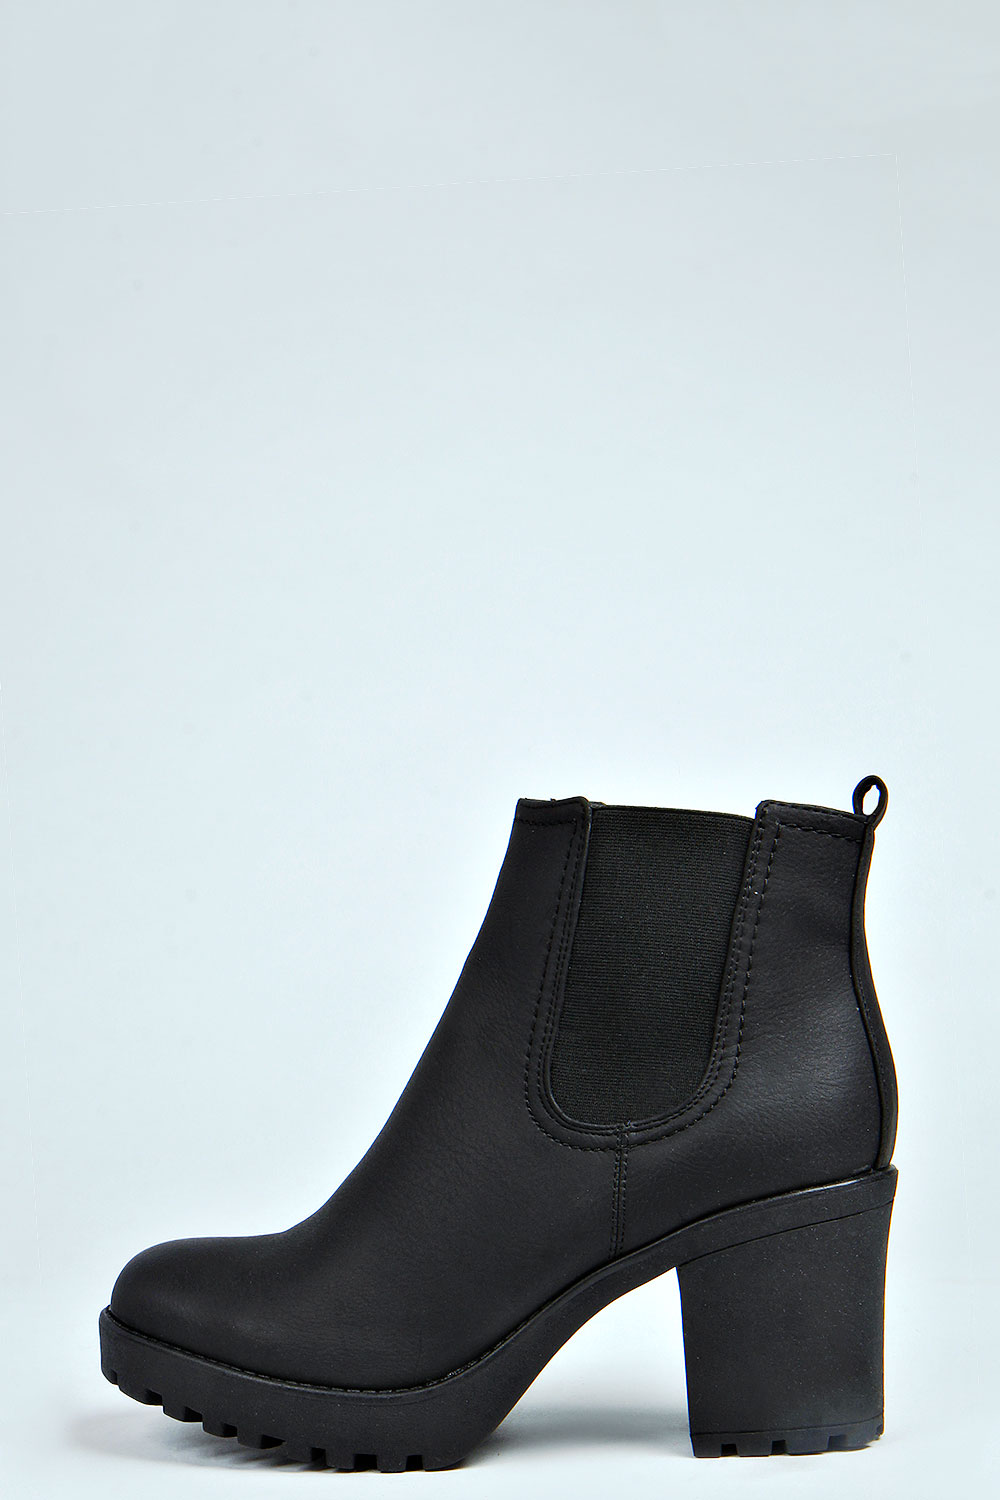 314afdd75 shoes, ankle boots, black boots, chelsea boots, boots, cleated sole, high  heels, style, hipster punk, chunky, high, heeled, ankle boots, chelsea boots,  ...